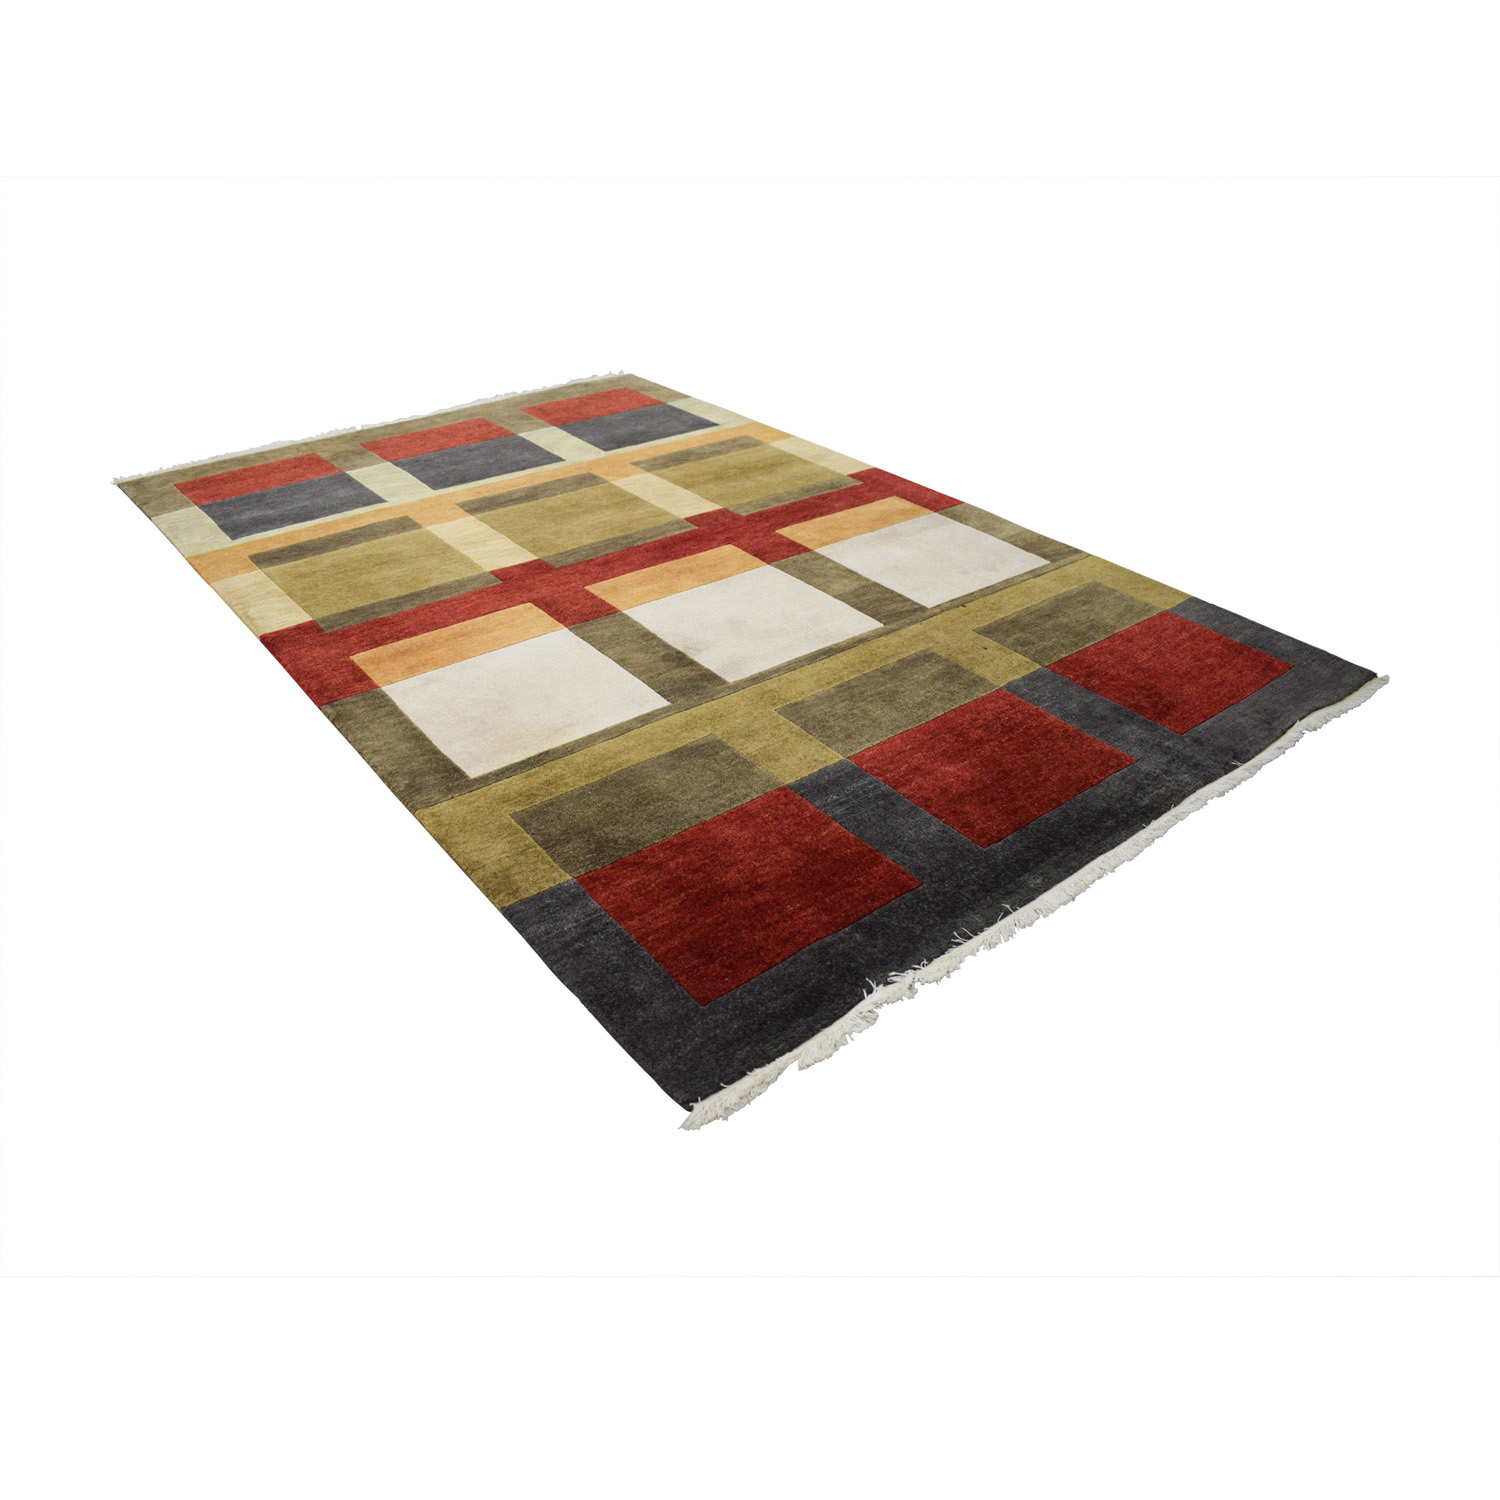 Ethan Allan Ethan Allan Multi-Colored Rug Rugs